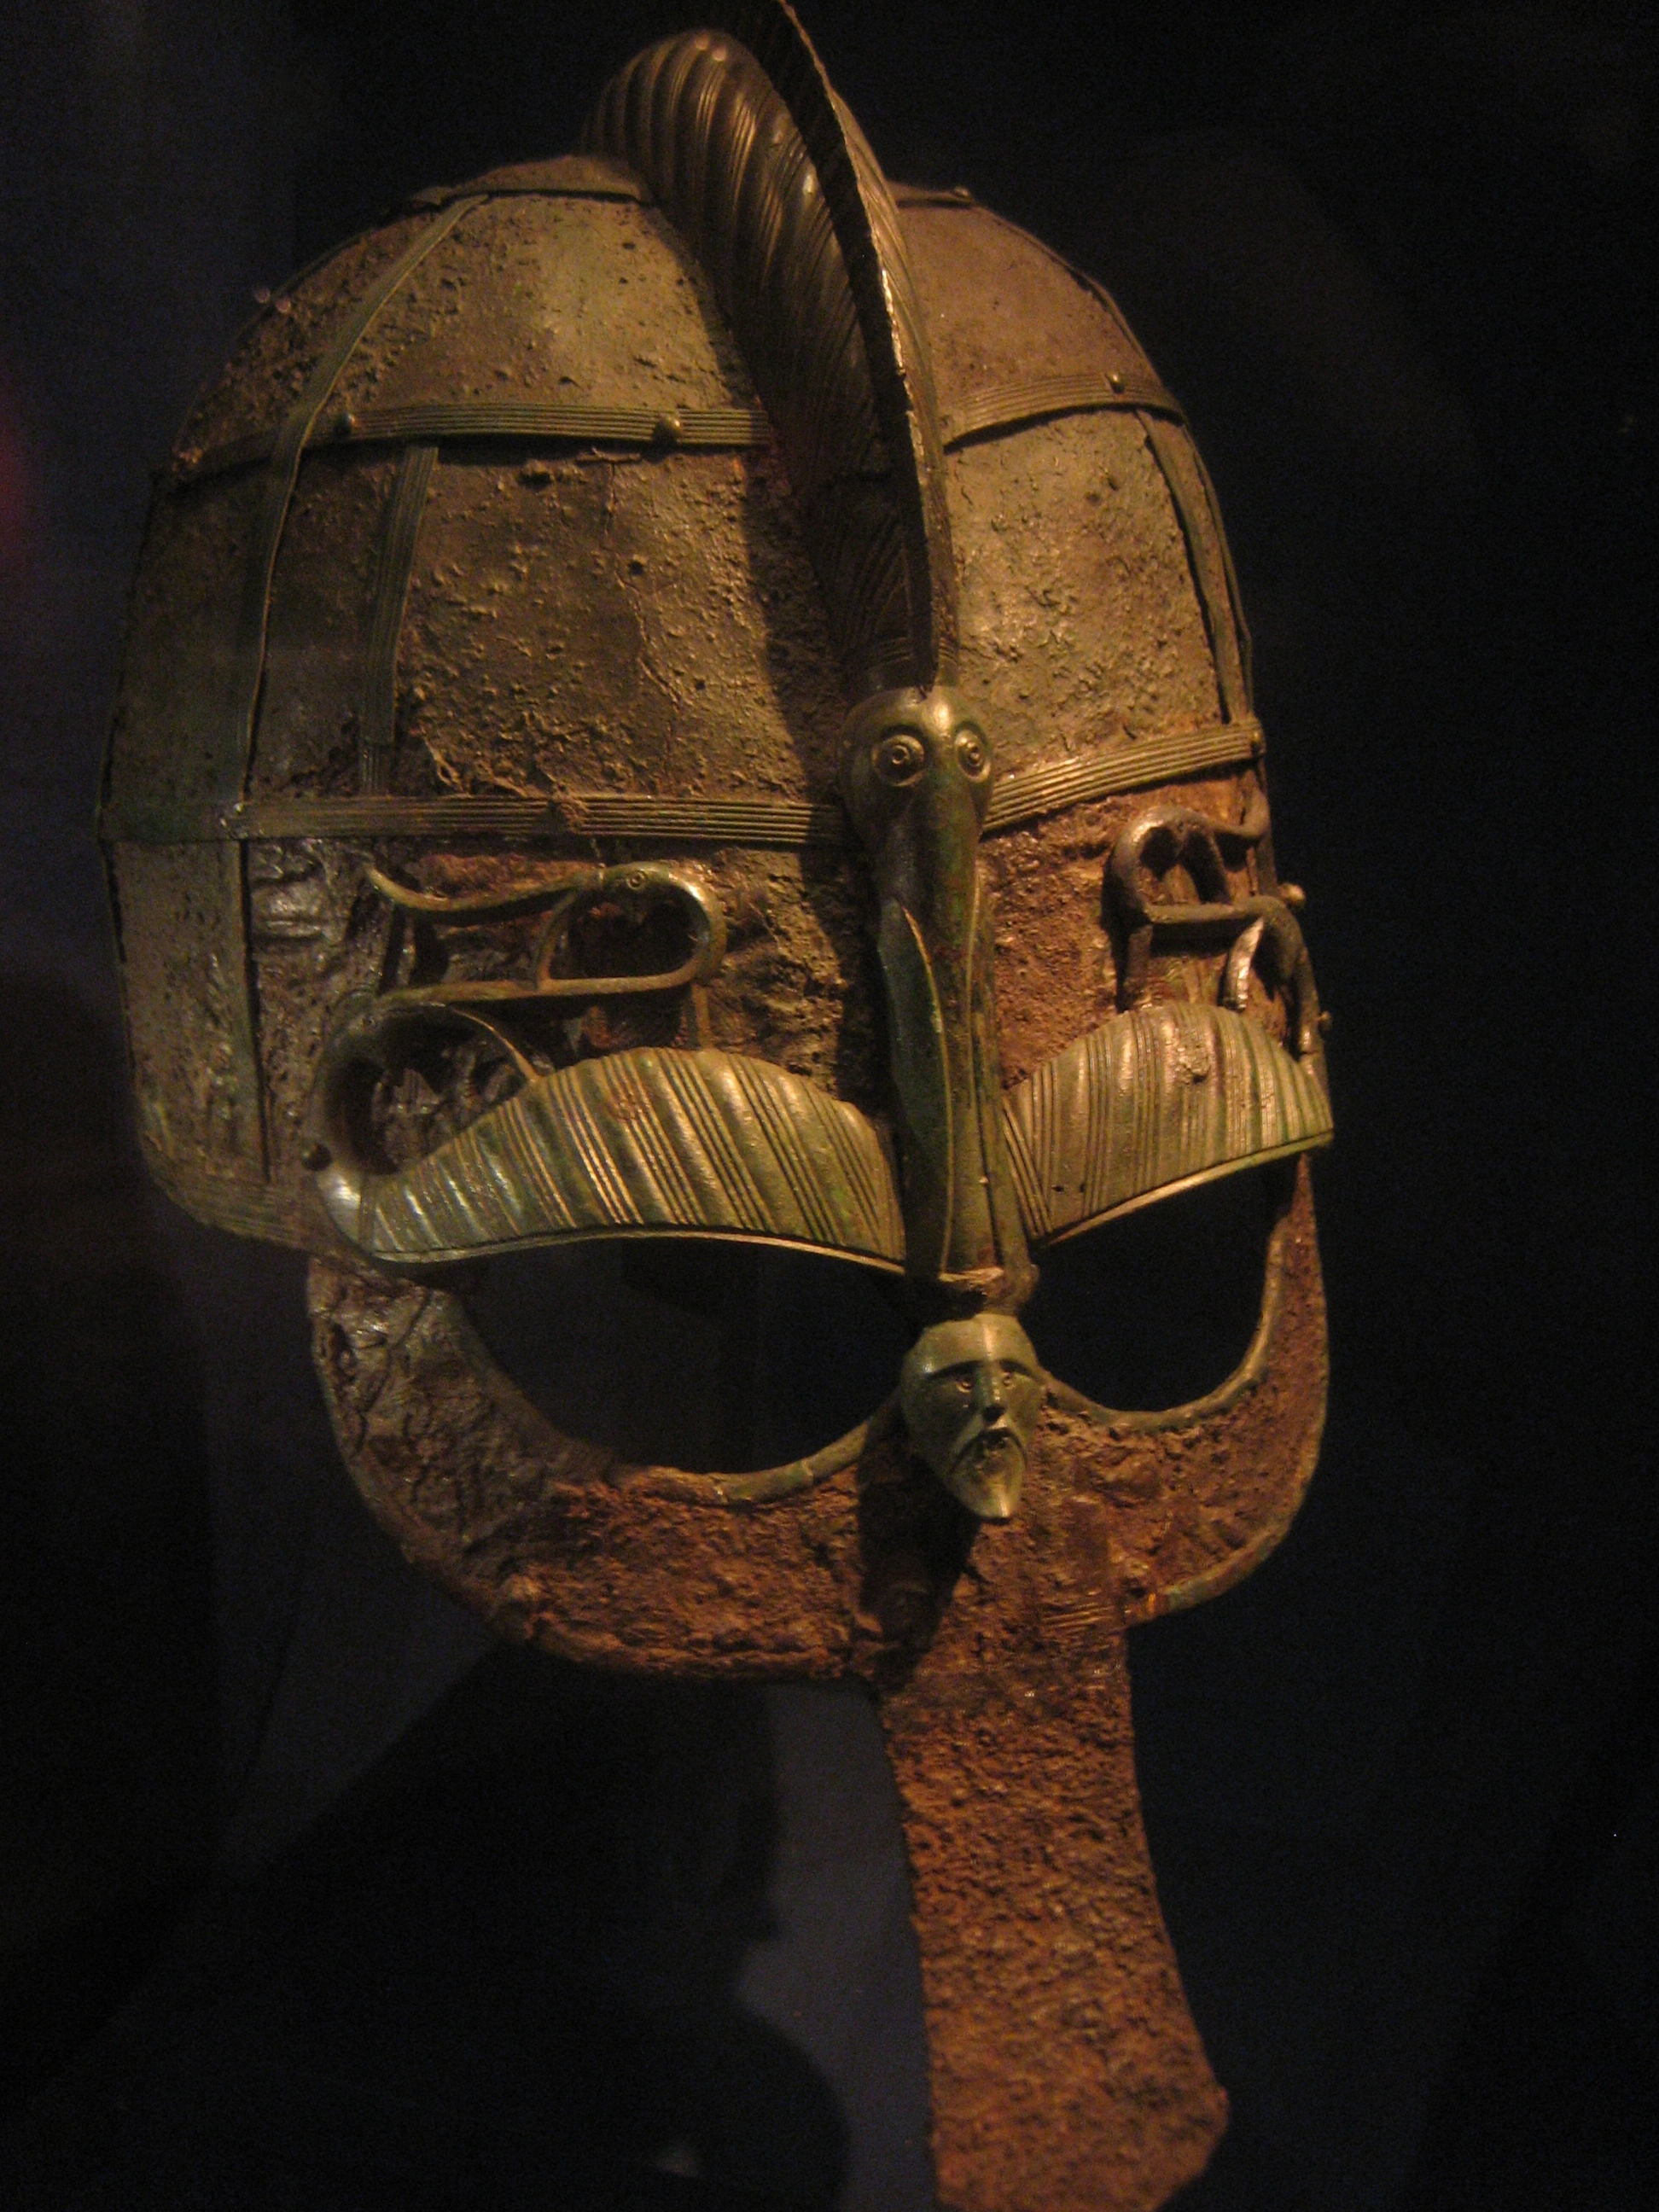 """sutton hoo and beowulf essay Our beowulf blog (natterings, chatter i had written my response for last week about roberta frank's """"beowulf and sutton hoo: in his essay """"locating."""